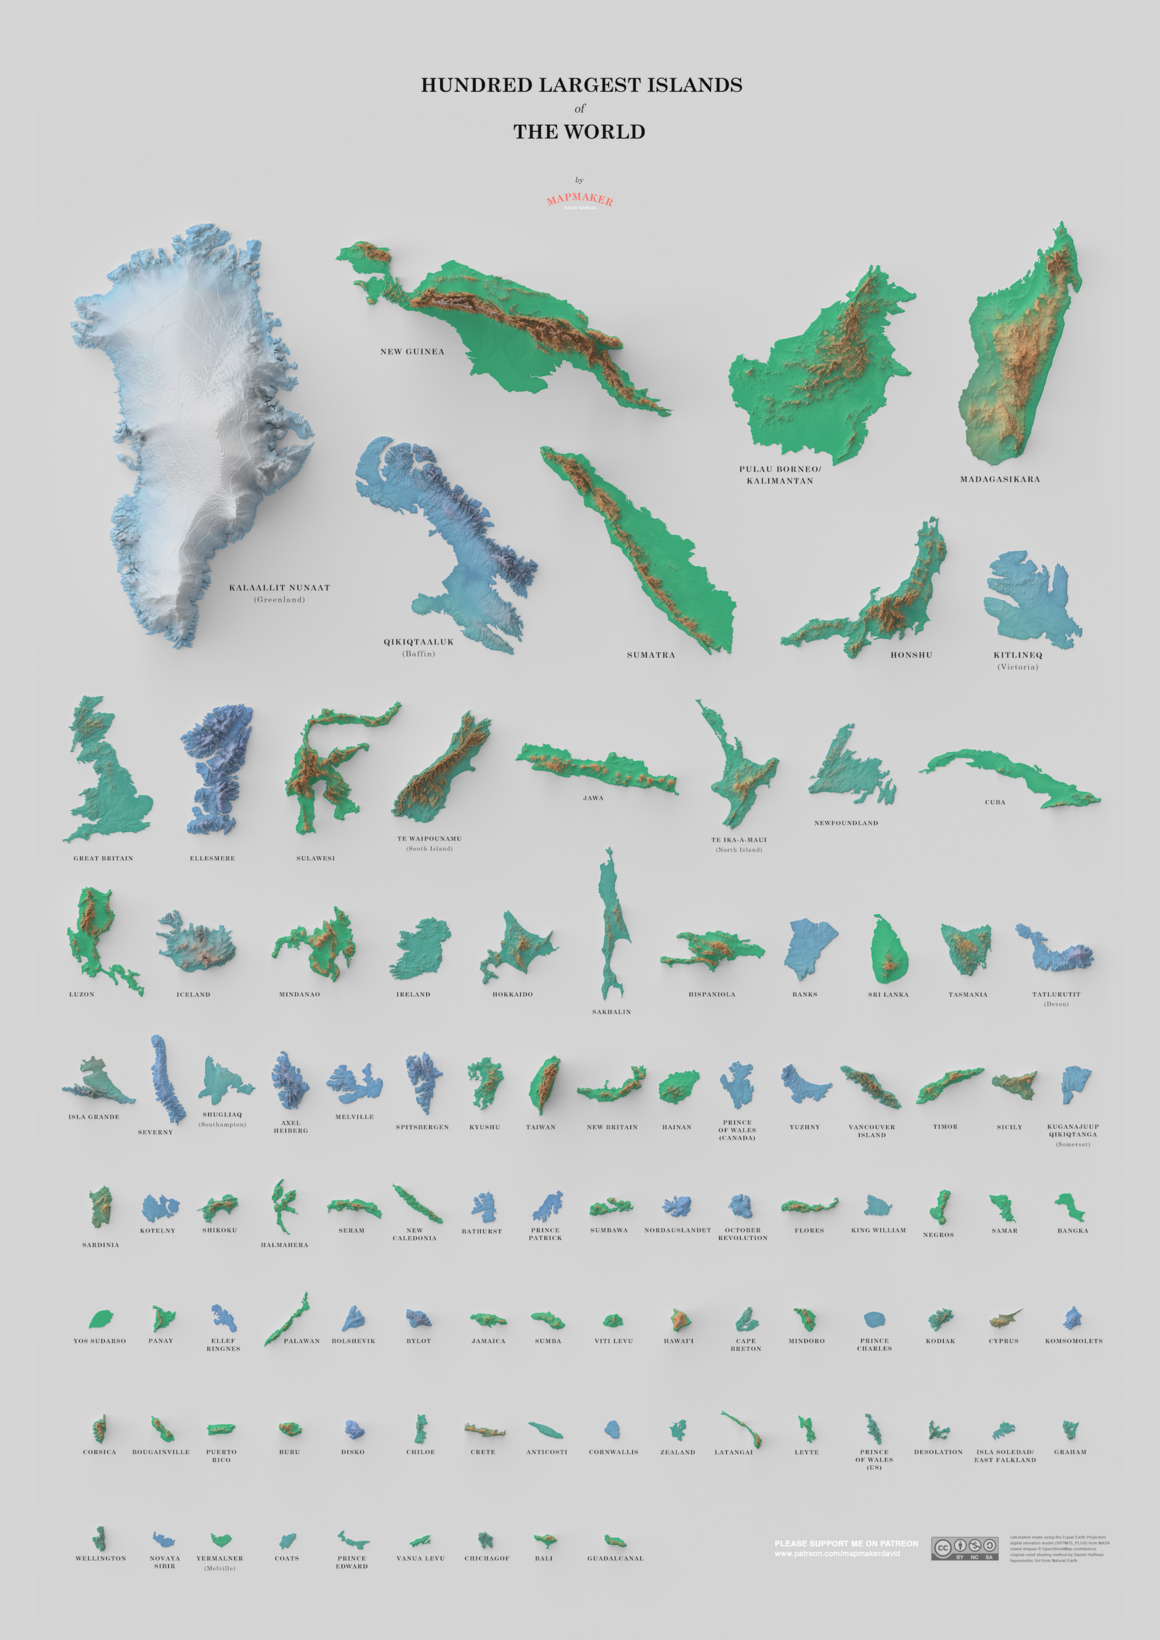 It\'s Not Easy to Map the 100 Largest Islands in the World - Atlas ...